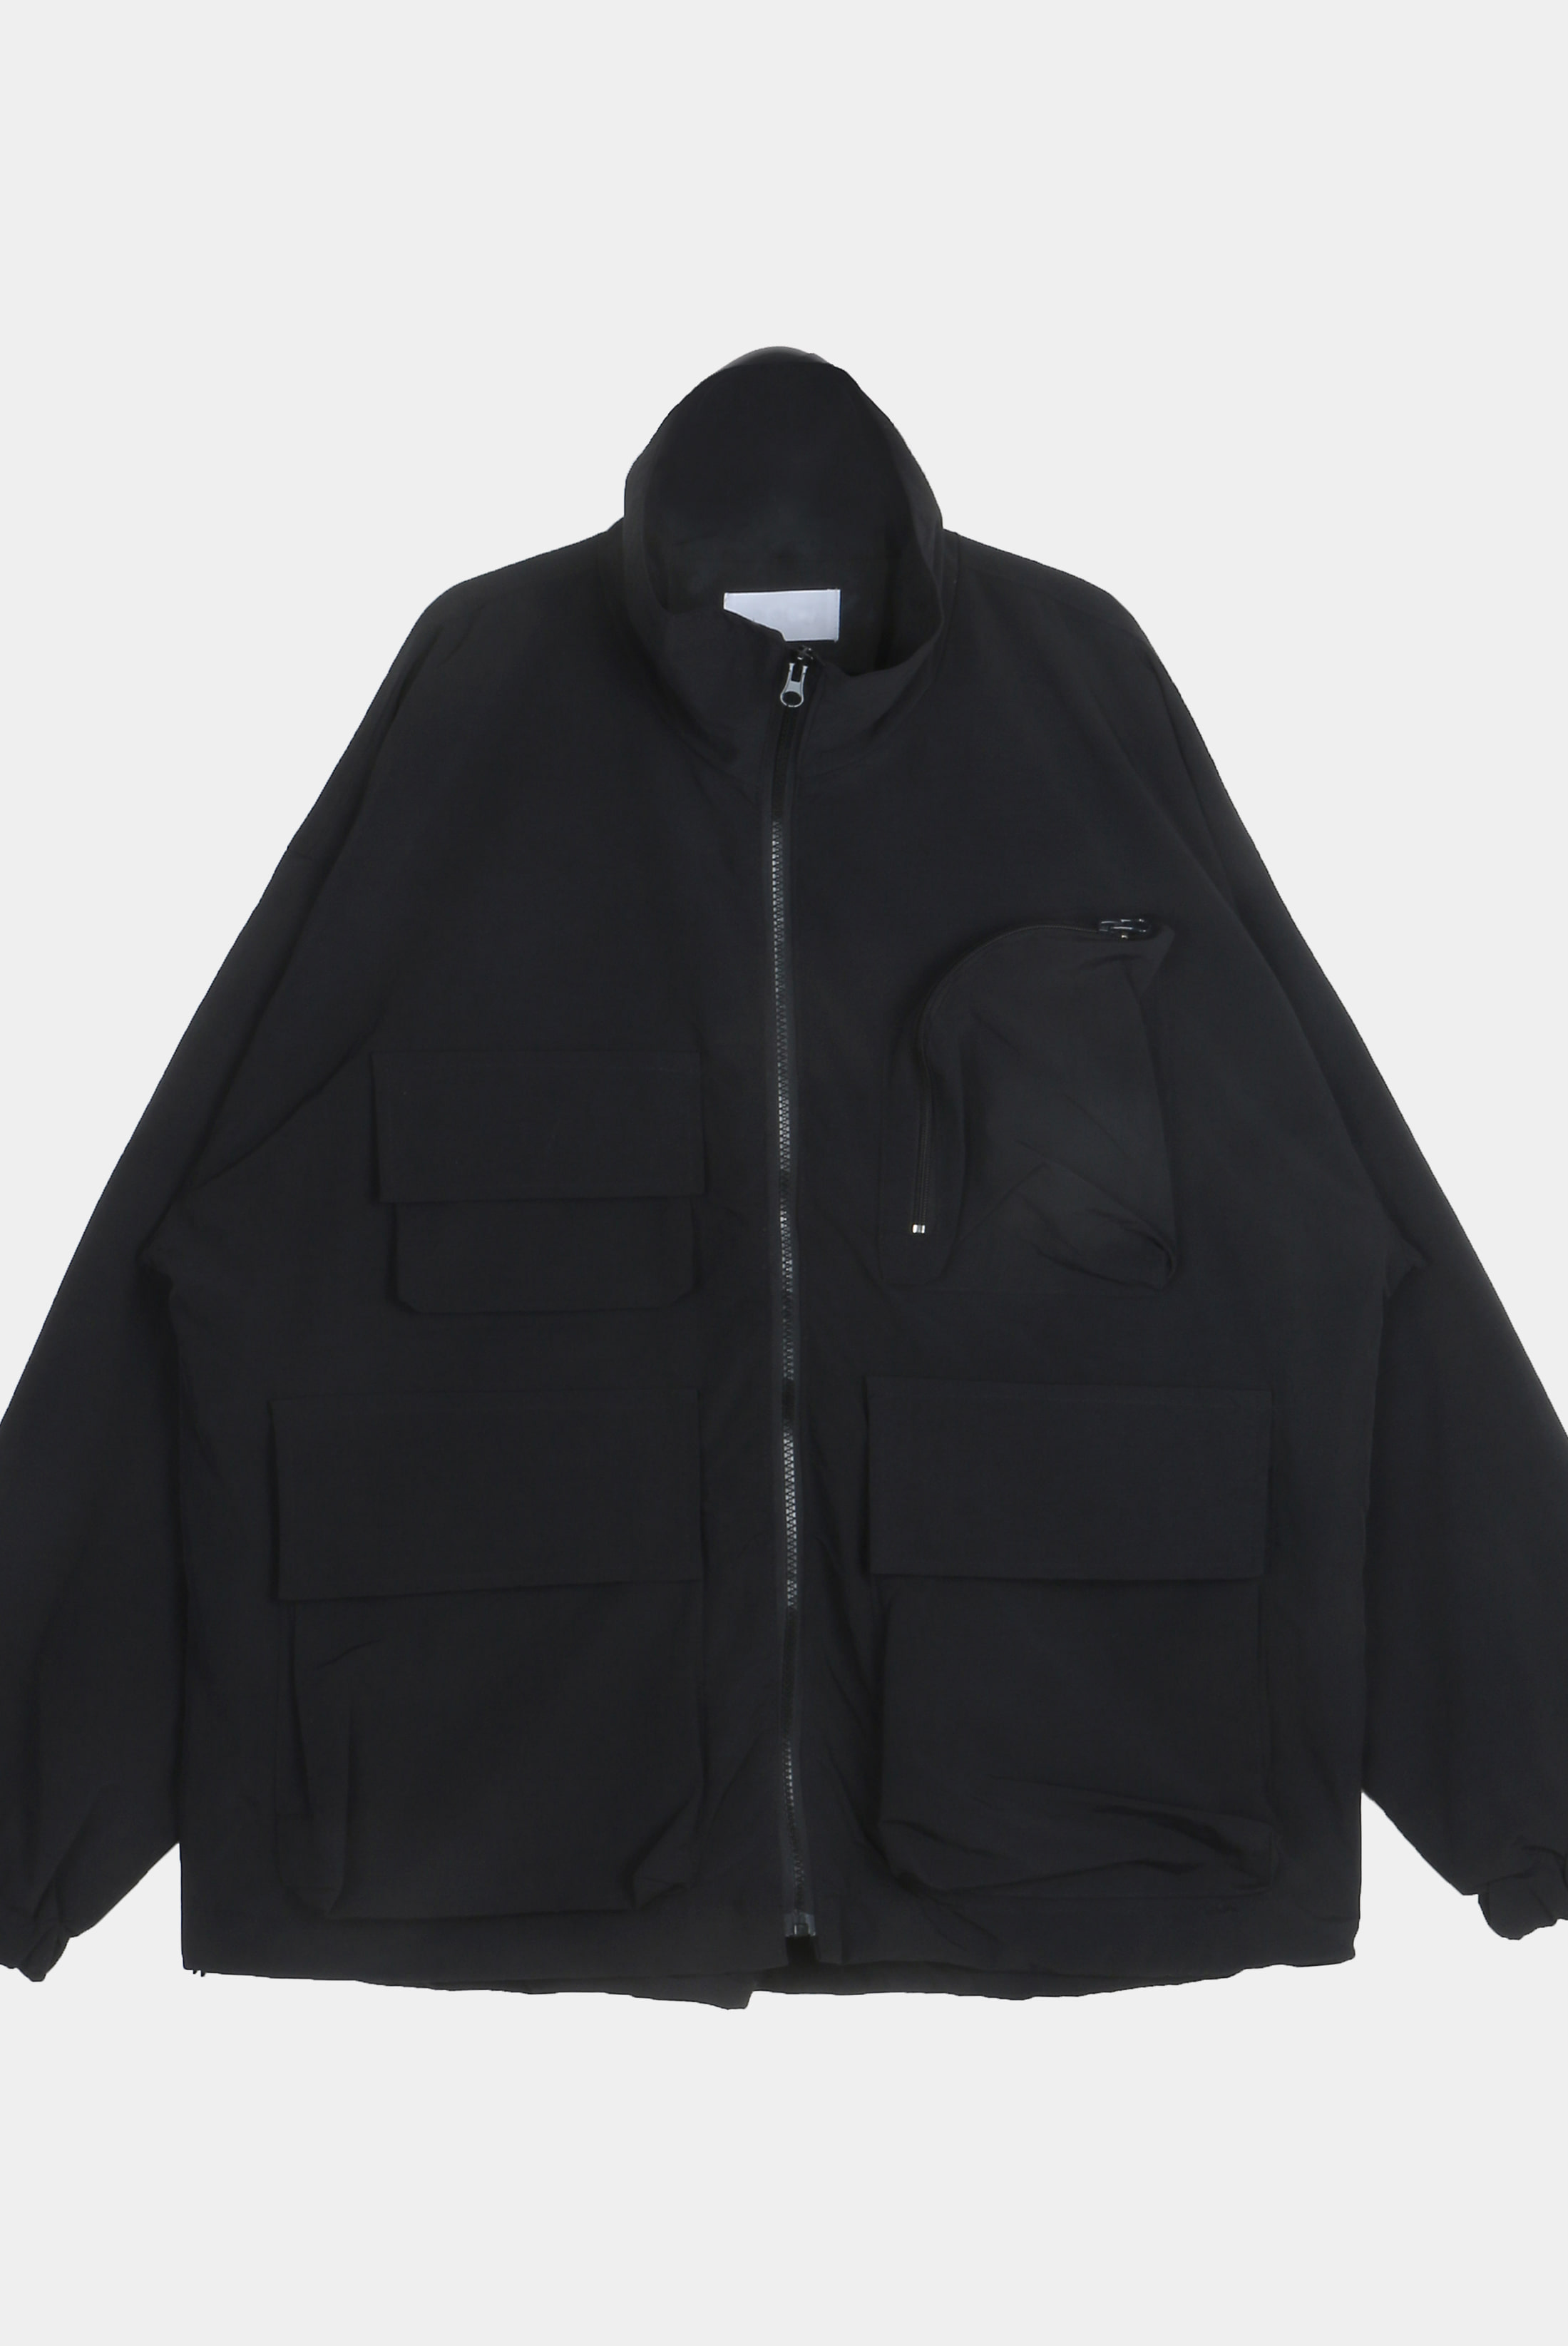 Unbalance Volume_Poket Jacket